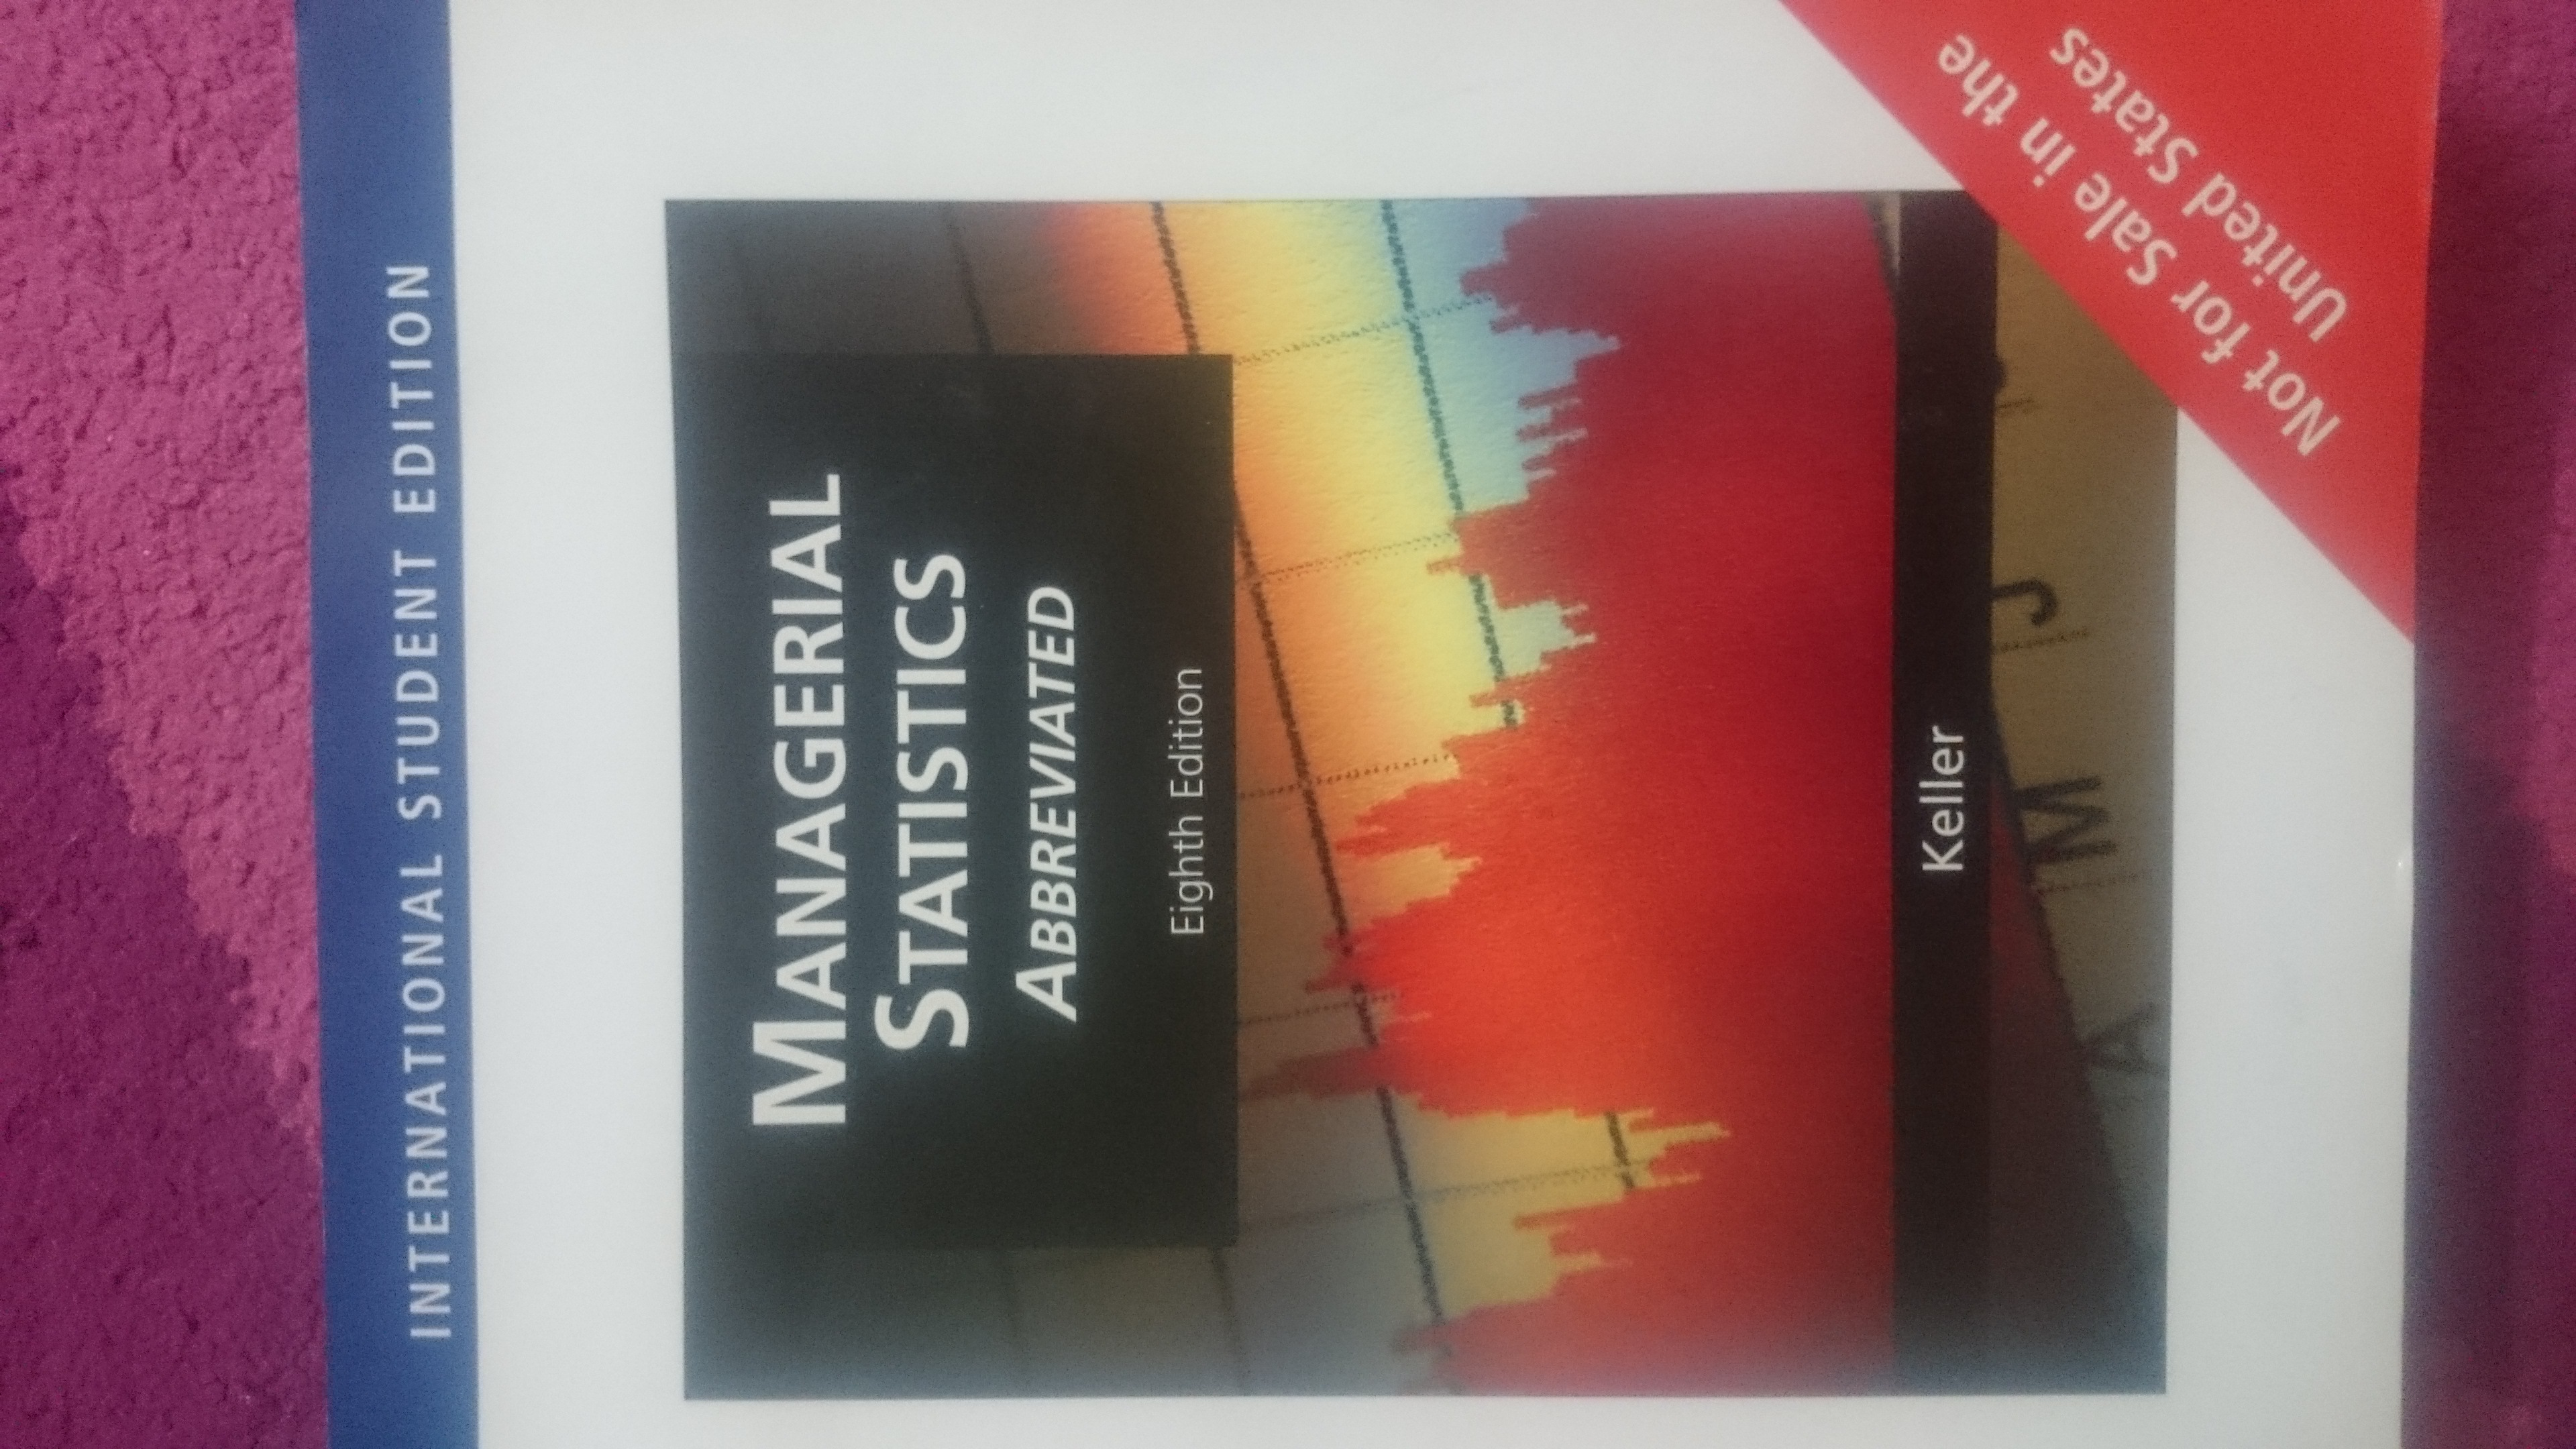 managerial accounting 9th edition mcgraw hill